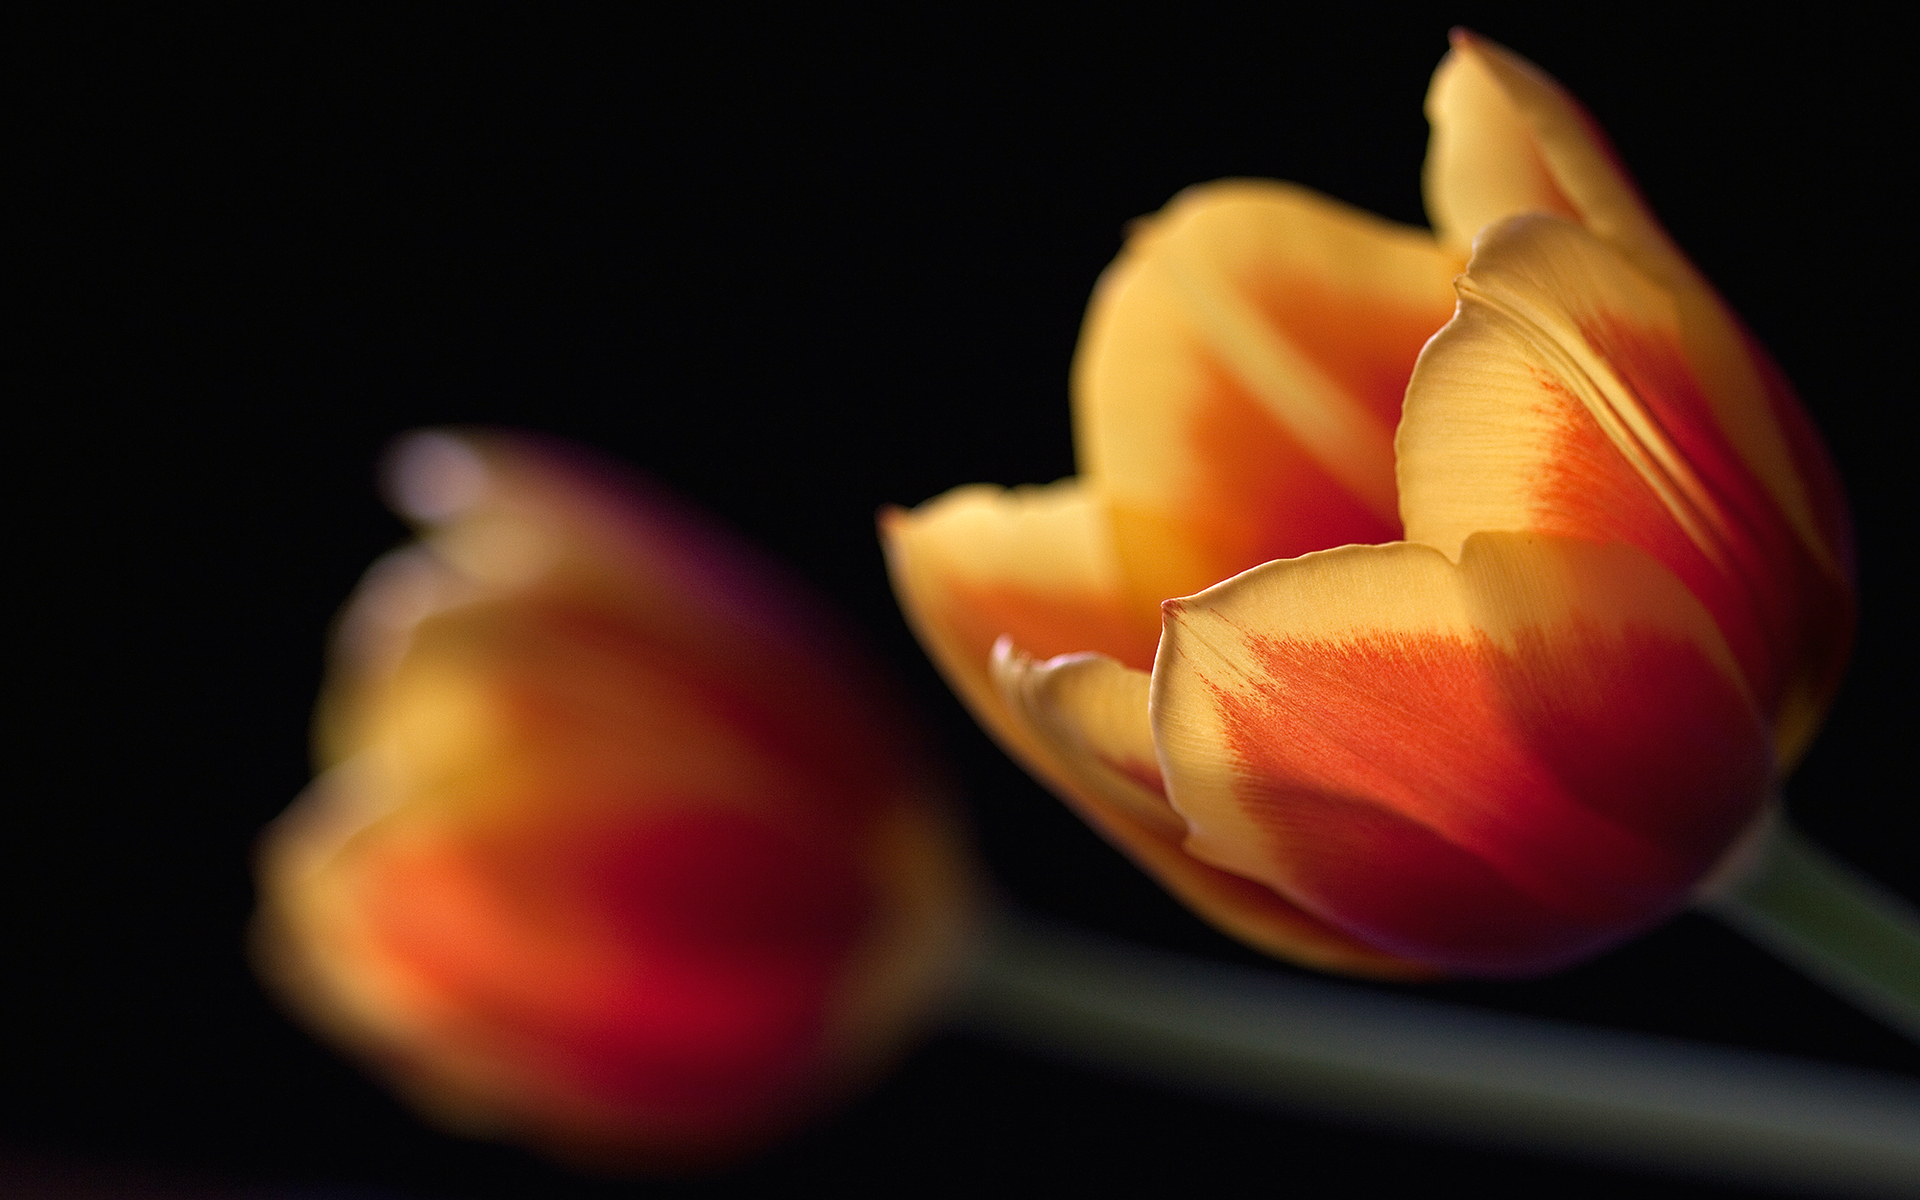 Tulips Couple 294.65 Kb